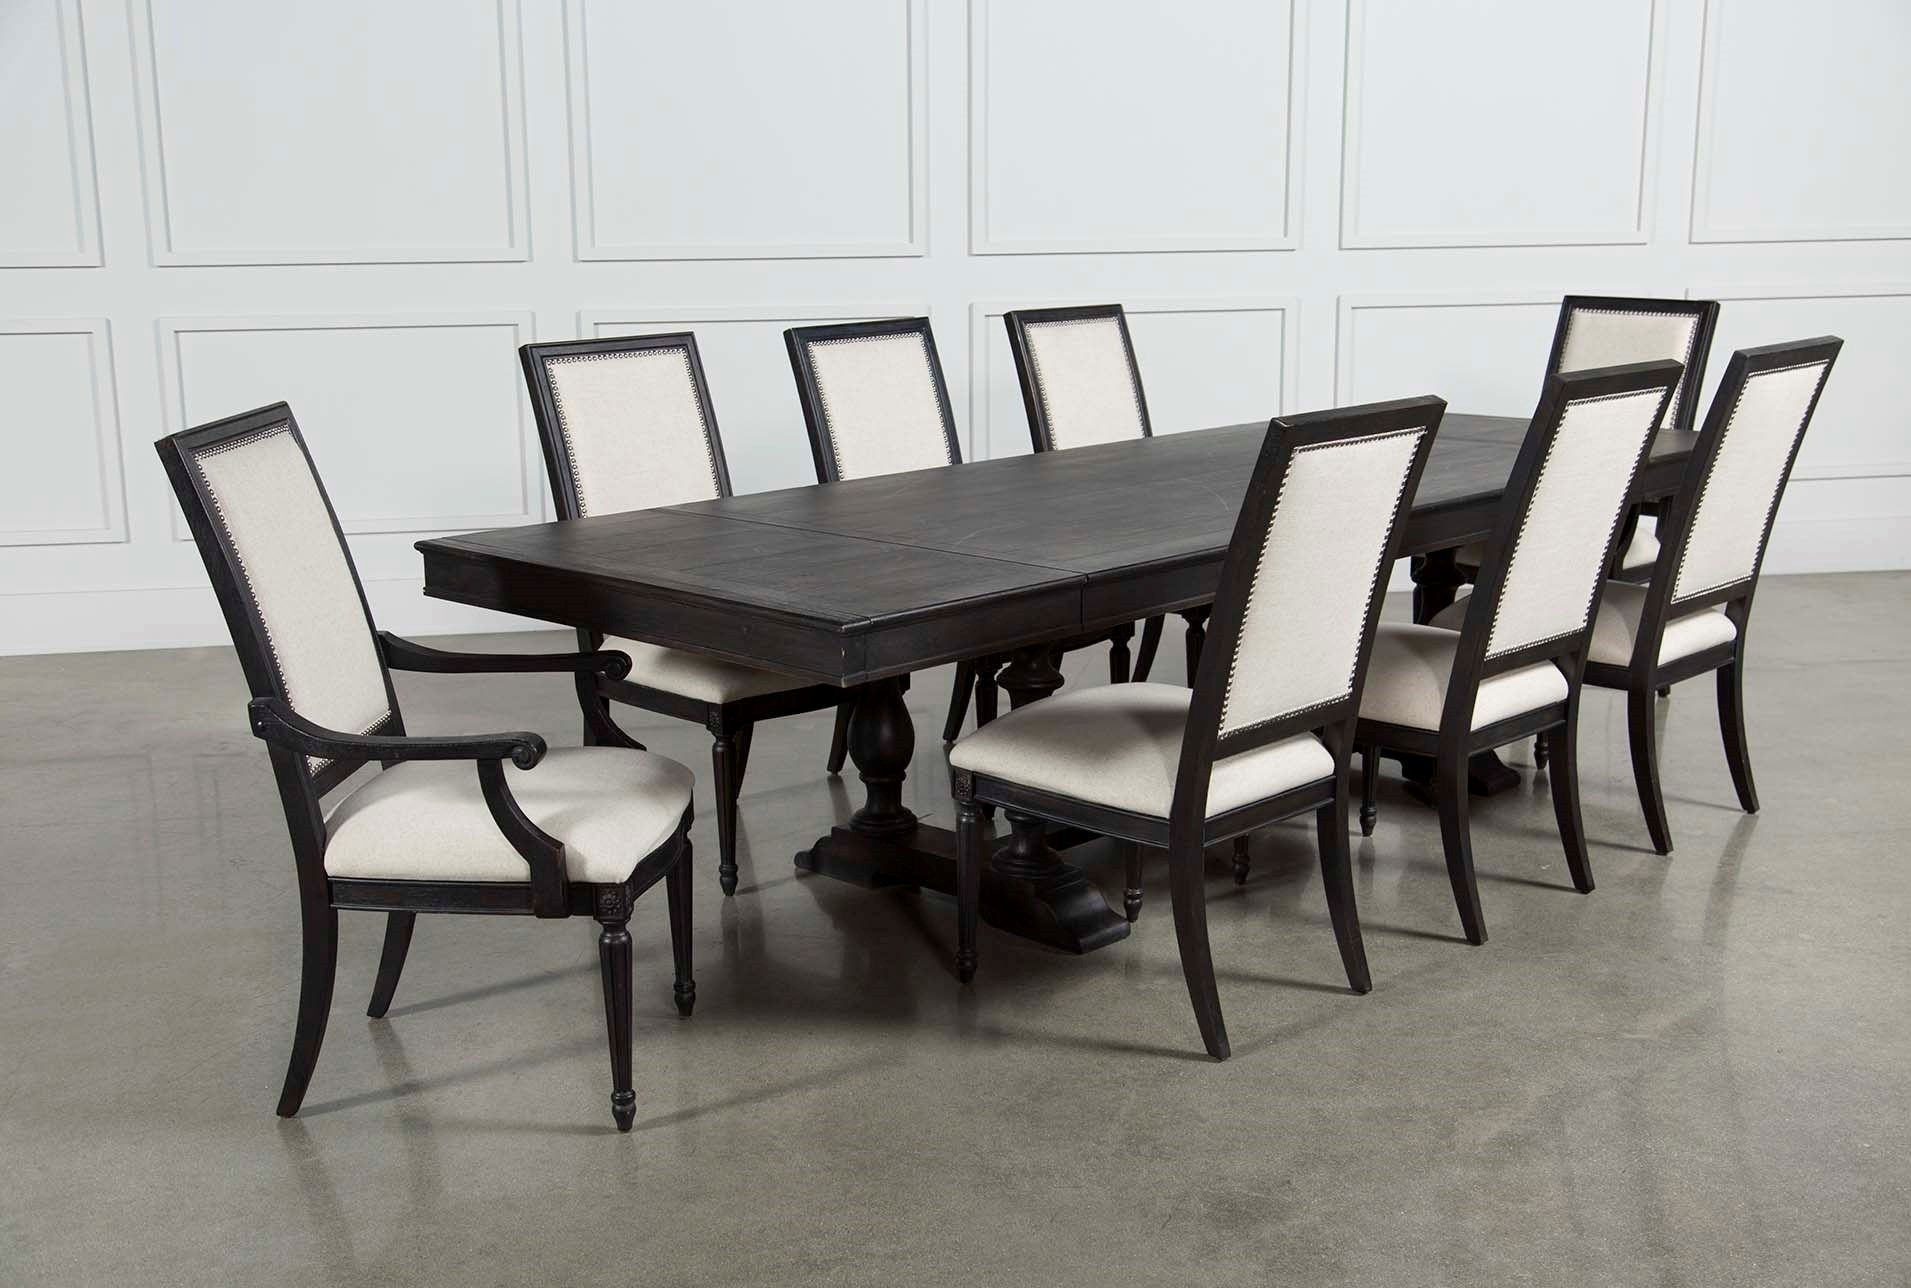 Chapleau 9 Piece Extension Dining Set, Brown | Extensions, Dining For Most Popular Chapleau Ii Extension Dining Tables (View 2 of 20)